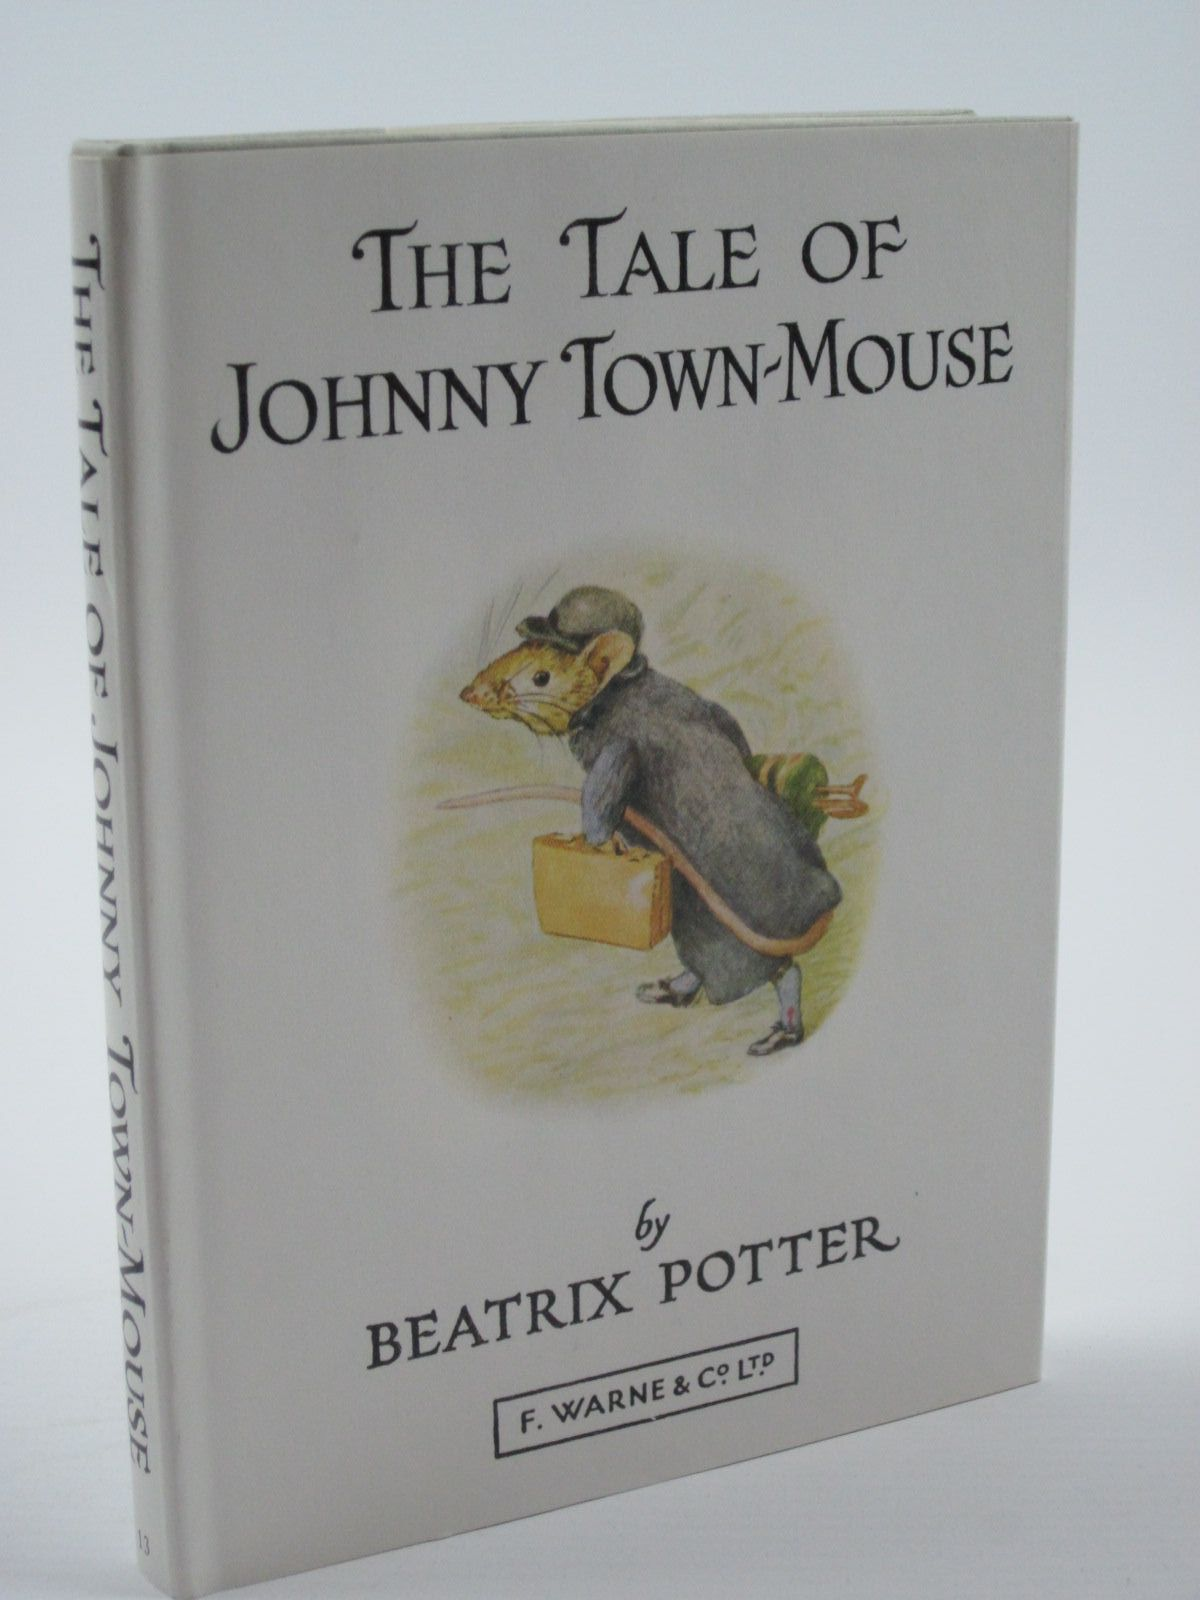 Photo of THE TALE OF JOHNNY TOWN-MOUSE written by Potter, Beatrix illustrated by Potter, Beatrix published by Frederick Warne & Co Ltd. (STOCK CODE: 1309329)  for sale by Stella & Rose's Books